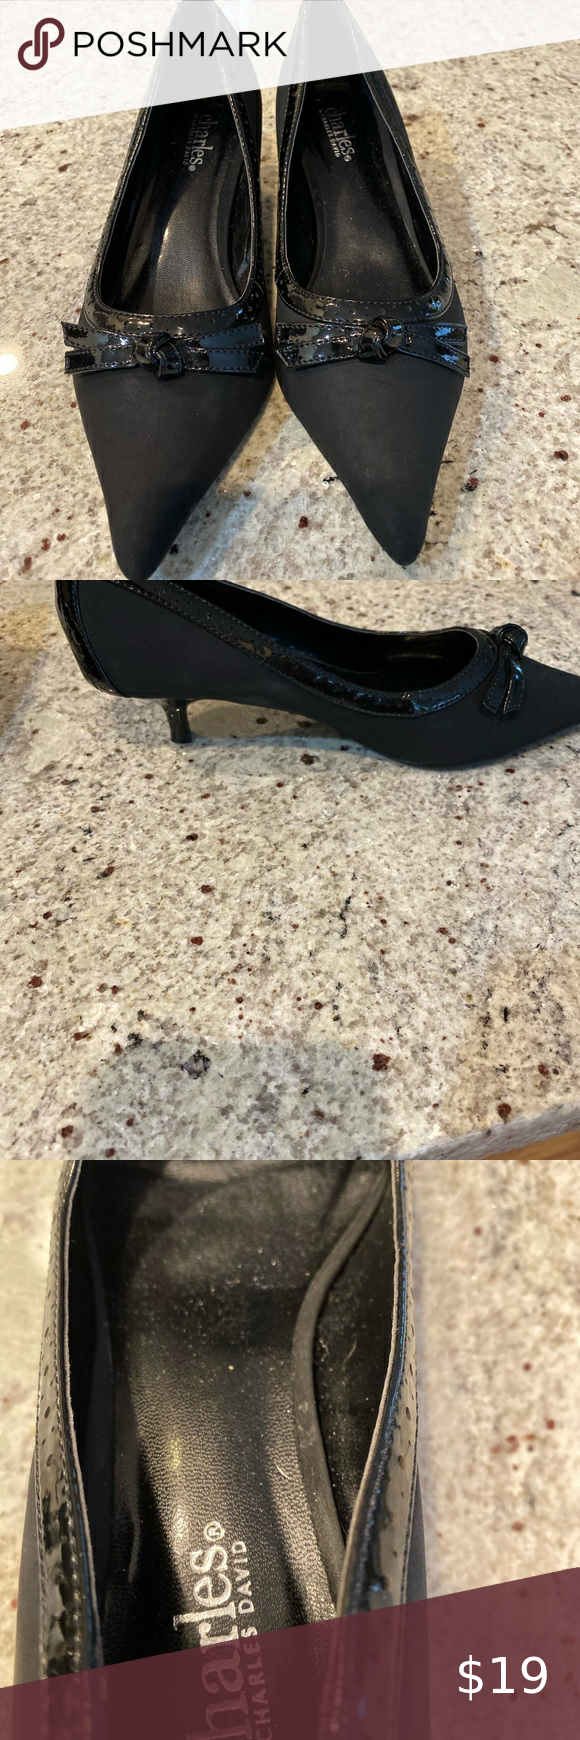 Women S Black Leather 1 3 4 Inch Leather D Orsay Kitten Heel Bravely By Sole Society Heels Shoes Sole Society Heels